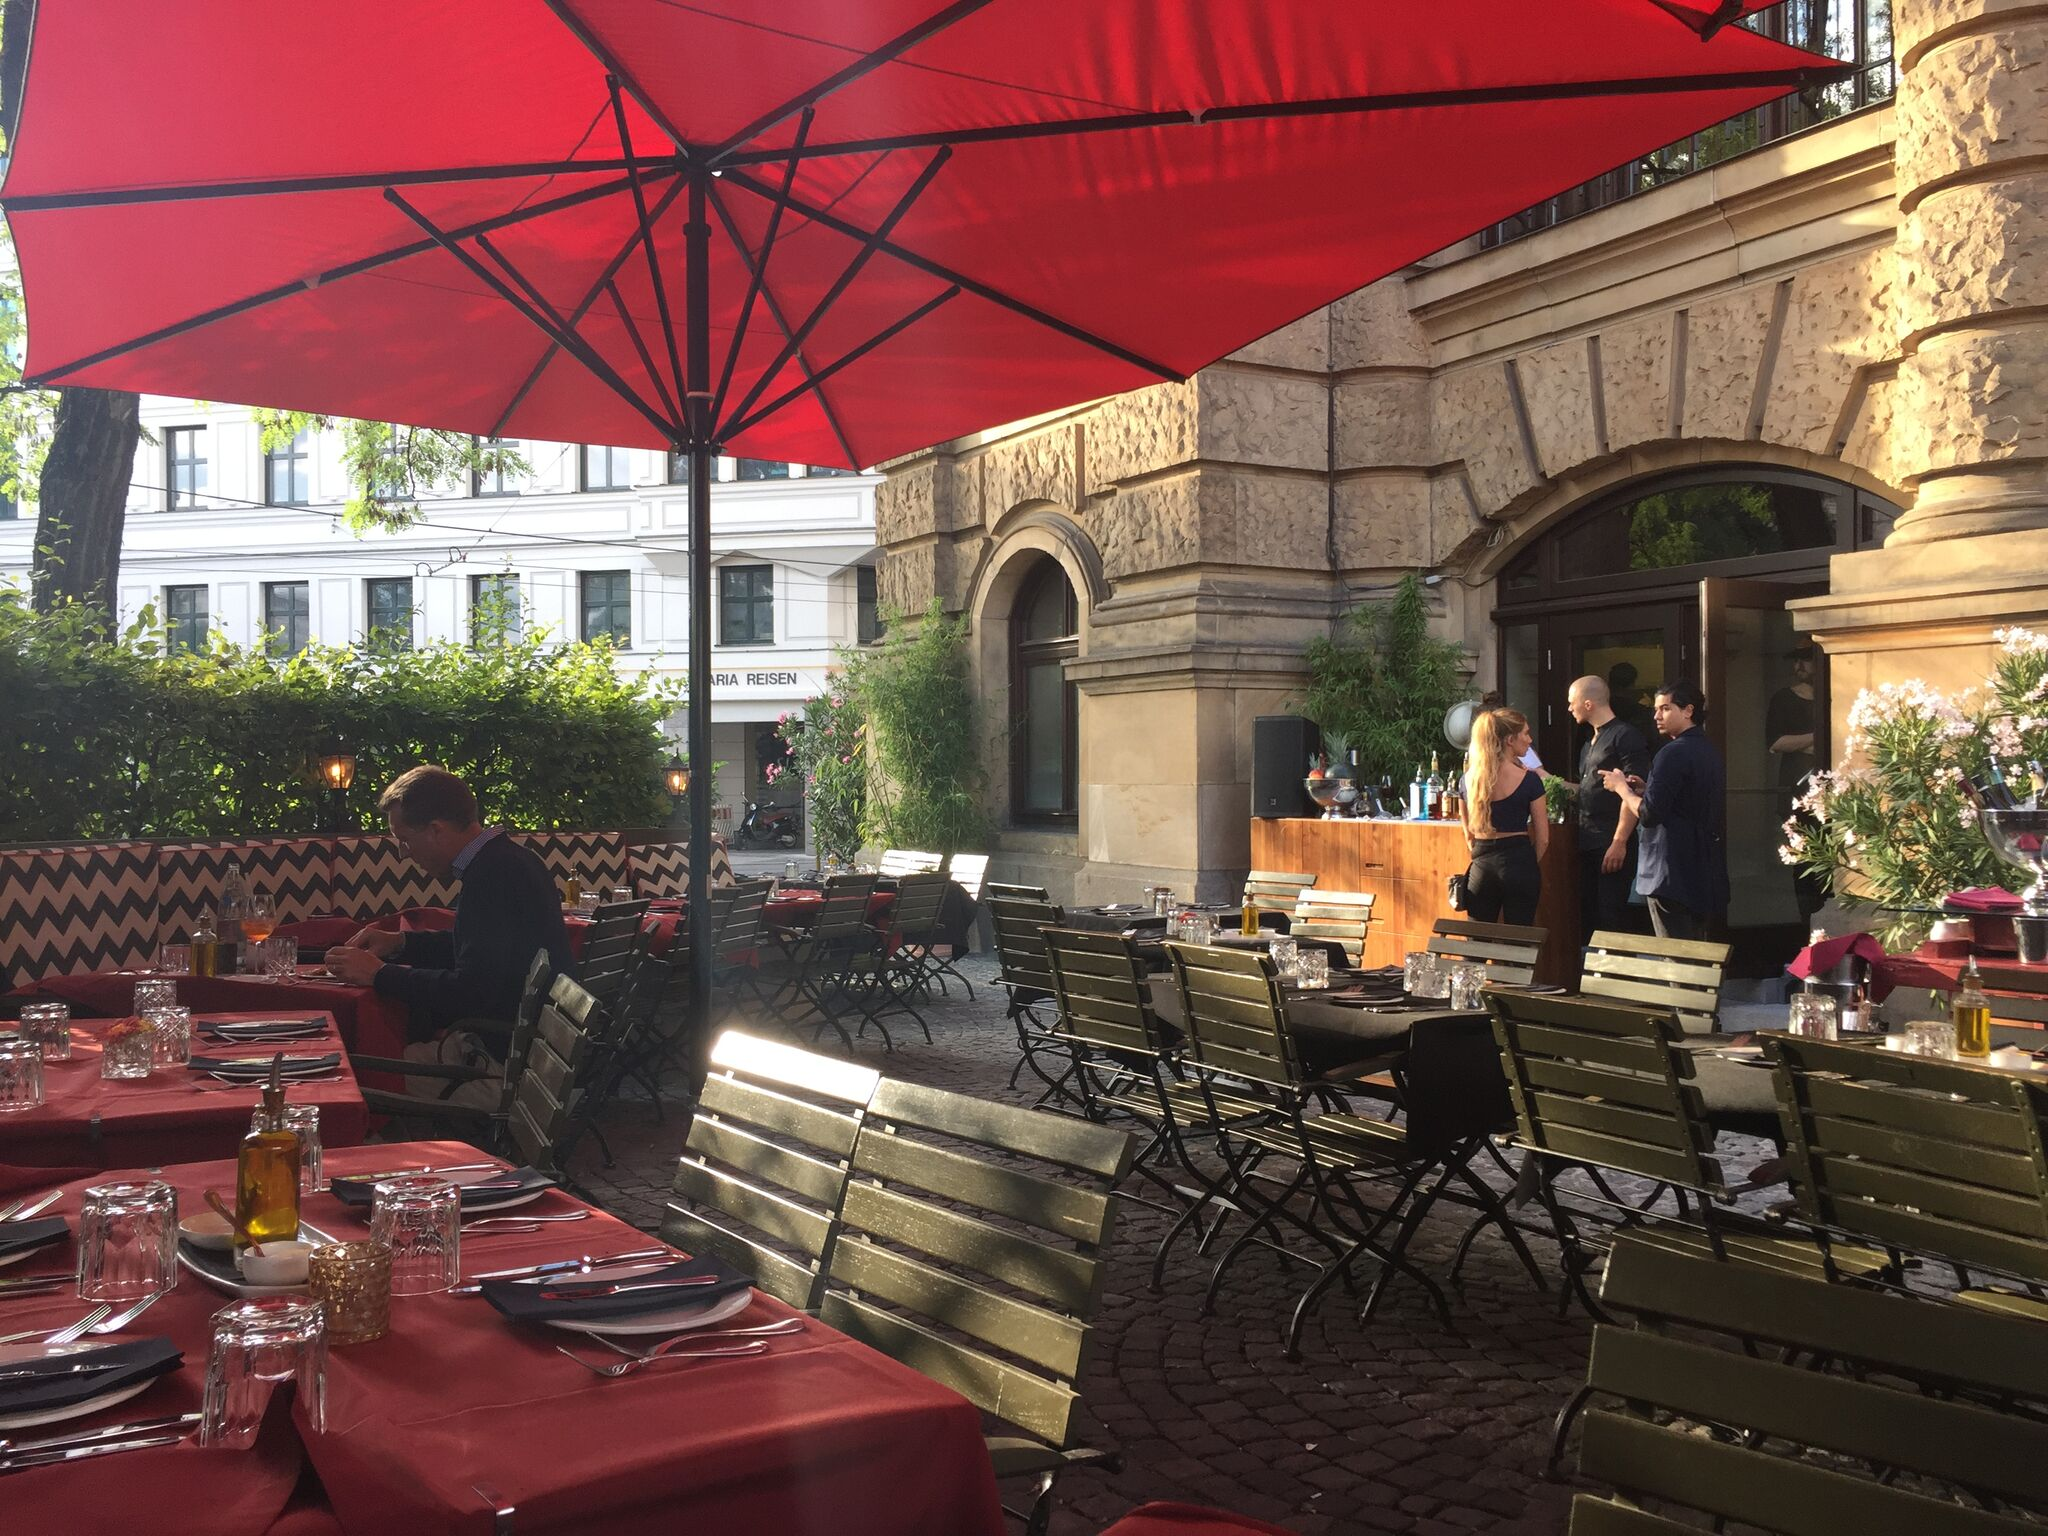 IMG 1358 1024x768 - Best Outdoor Bars and Rooftops for a Drink in Munich